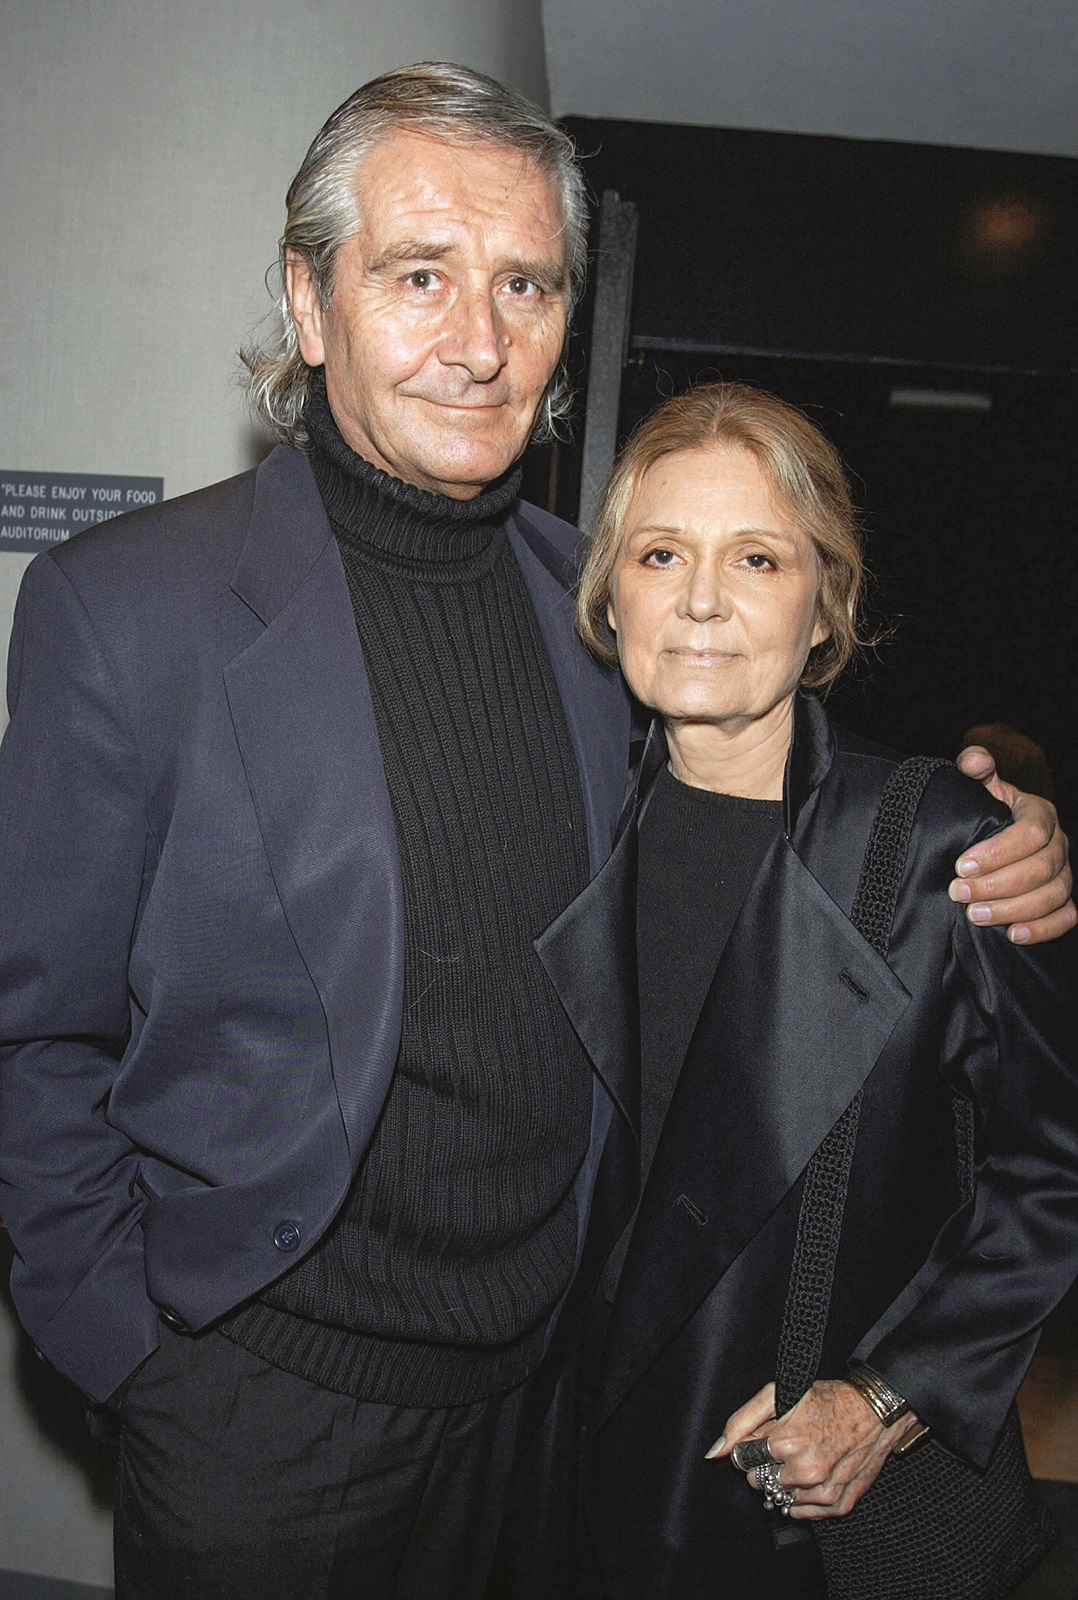 LOS ANGELES - MARCH 4:   Author Gloria Steinem (R) and her husband David Bale, Christian Bale's father, arrive at the premiere of 'Laurel Canyon' at the Harmony Theater on March 4, 2003 in Los Angeles, California. (Photo by Kevin Winter/Getty Images)